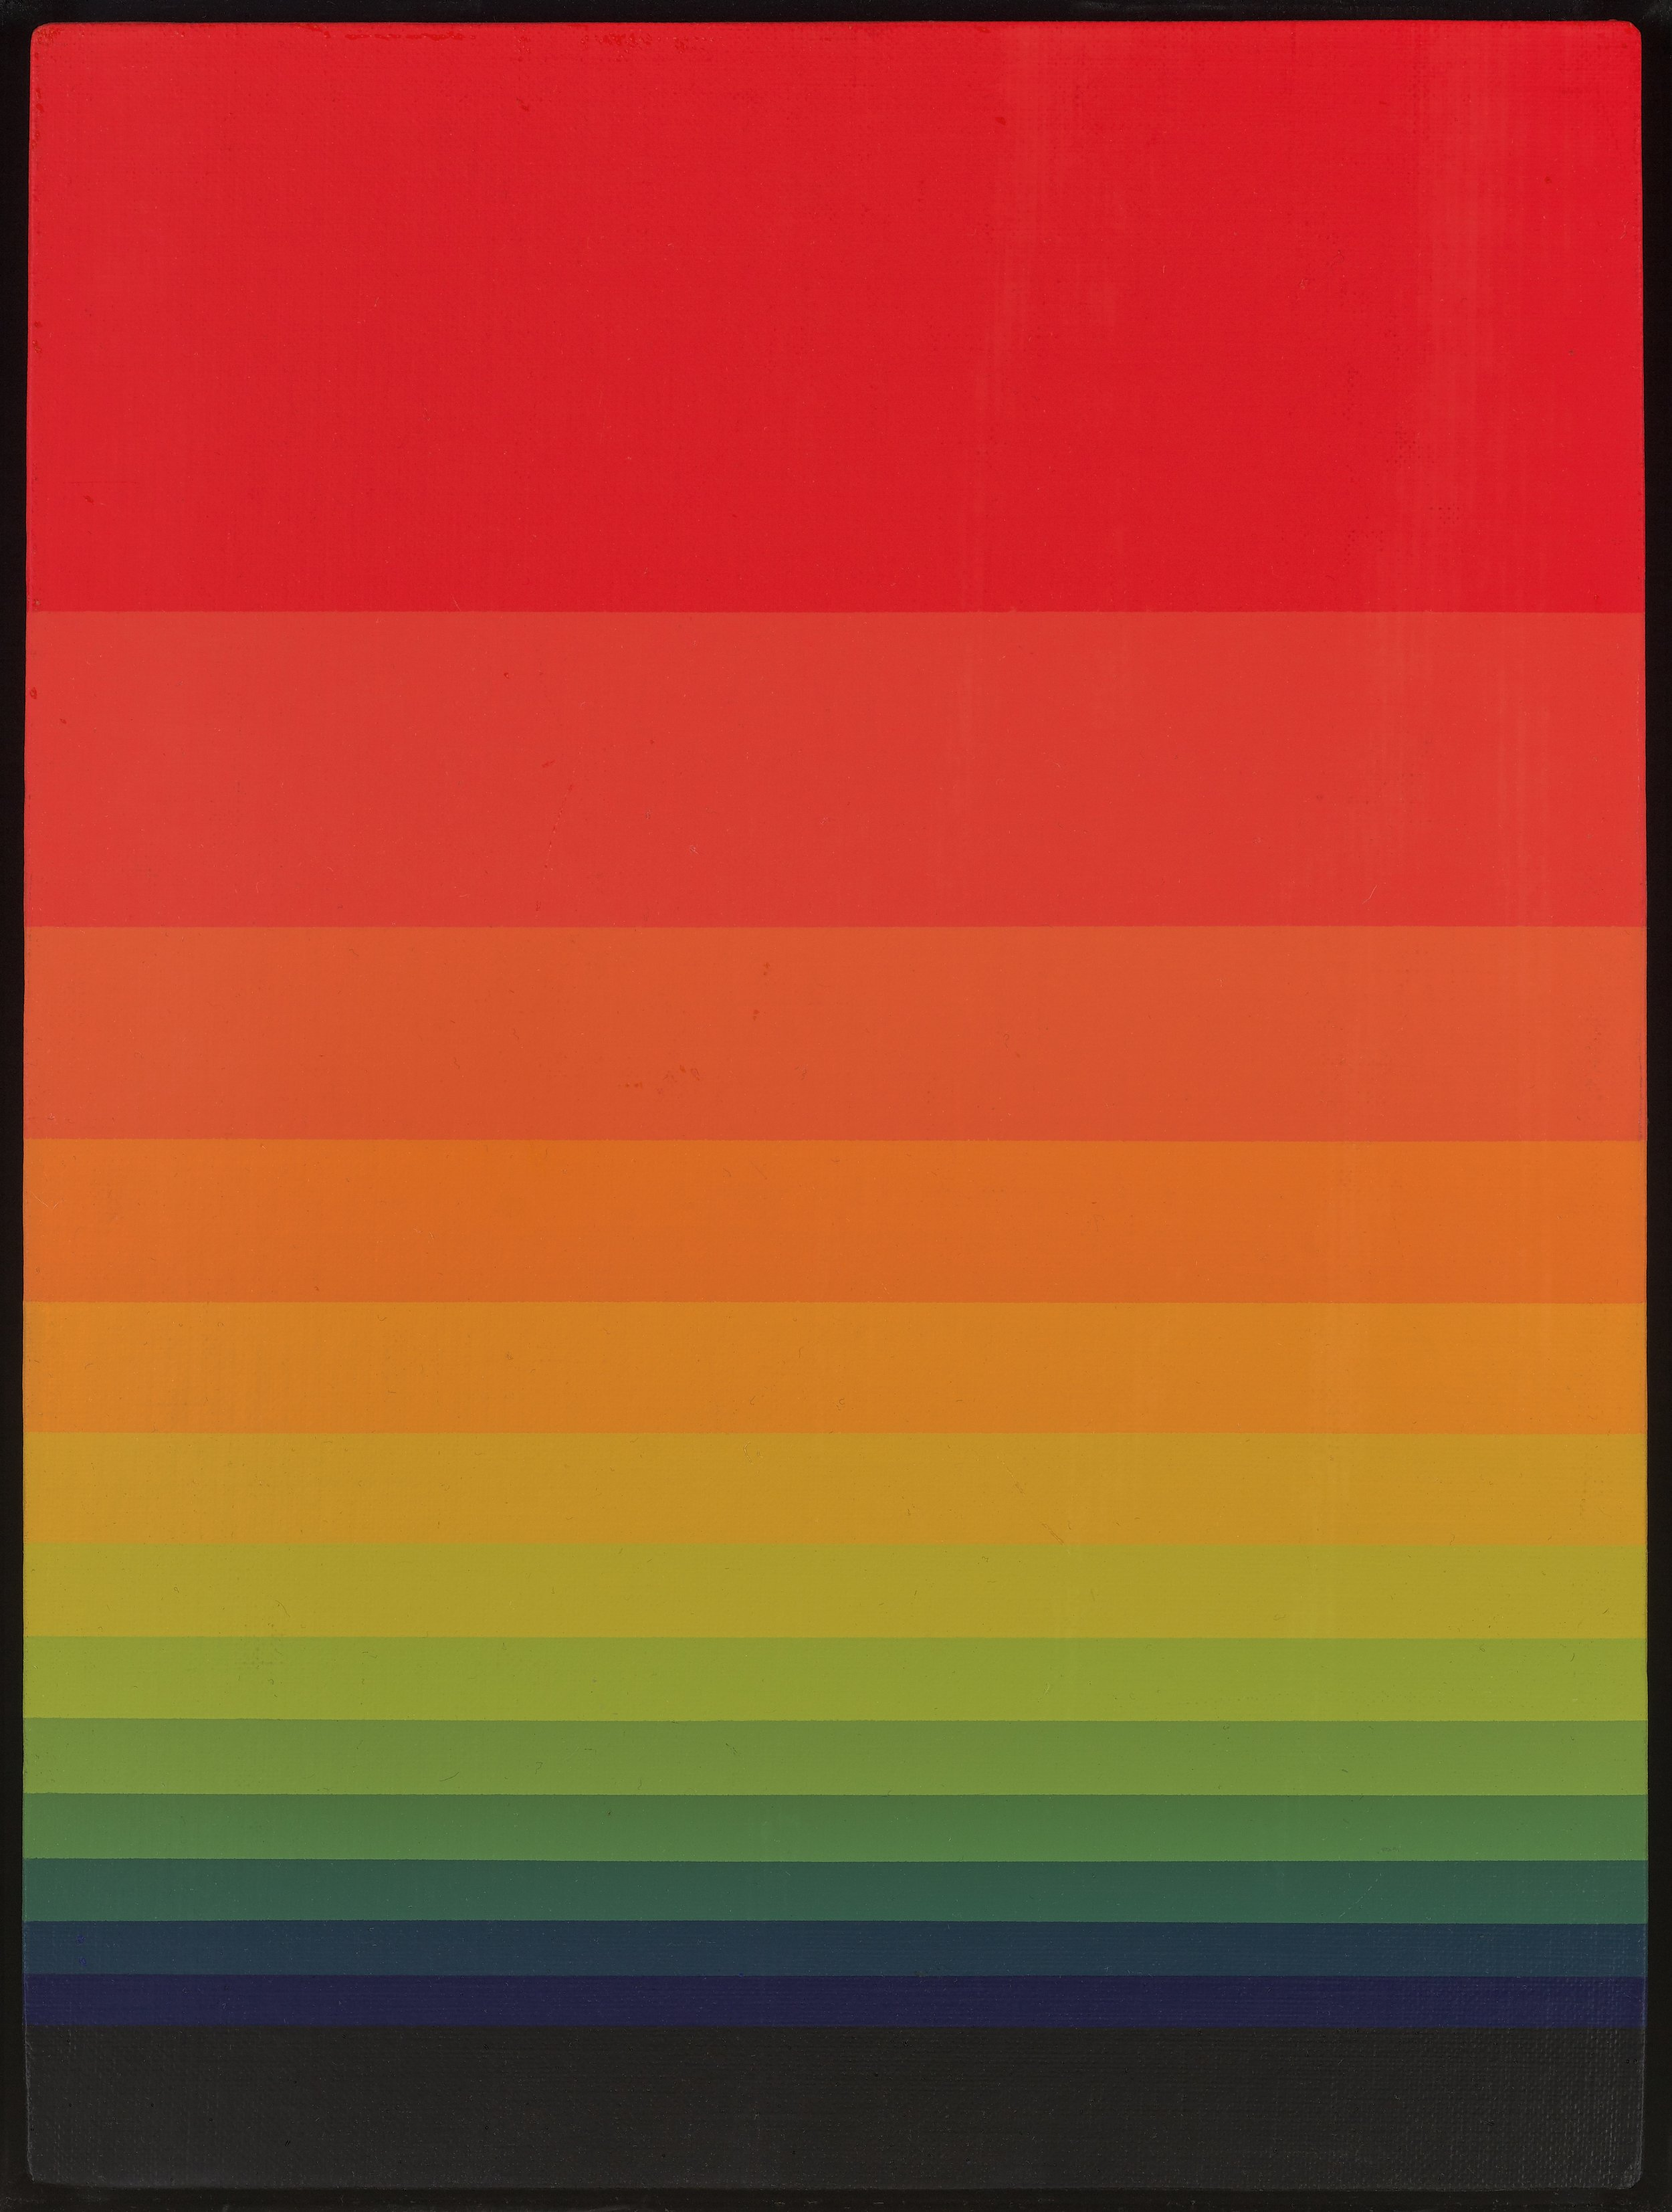 Norman Zammitt  (1931-2007)  Red, Green, Blue , 1975 acrylic on canvas board 16 x 12 inches; 40.6 x 30.5 centimeters